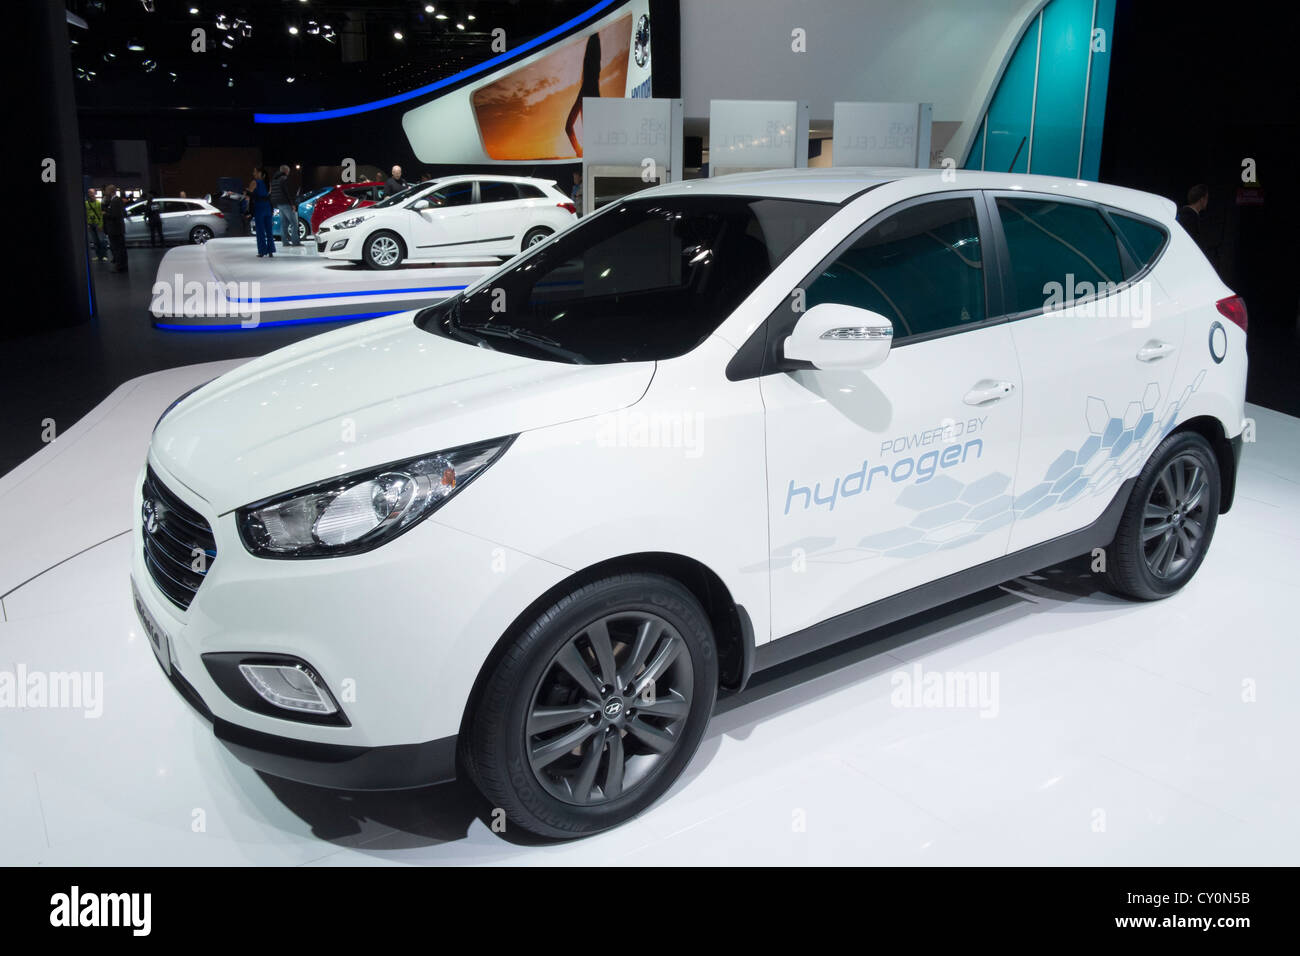 Concept à pile à combustible Hyundai ix35 voiture à Paris Motor Show 2012 Photo Stock